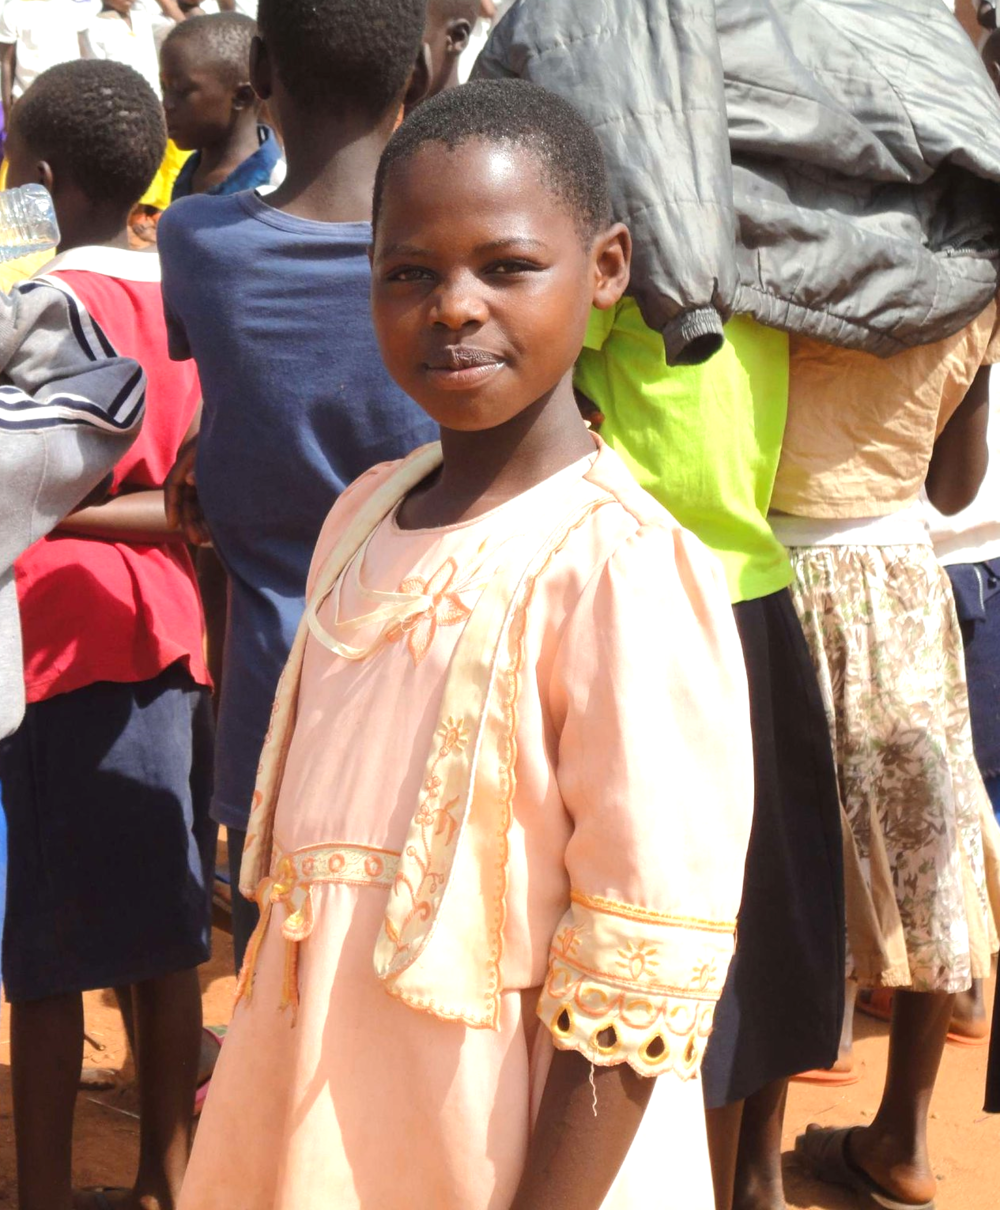 When a young girl receives an education her entire community thrives.